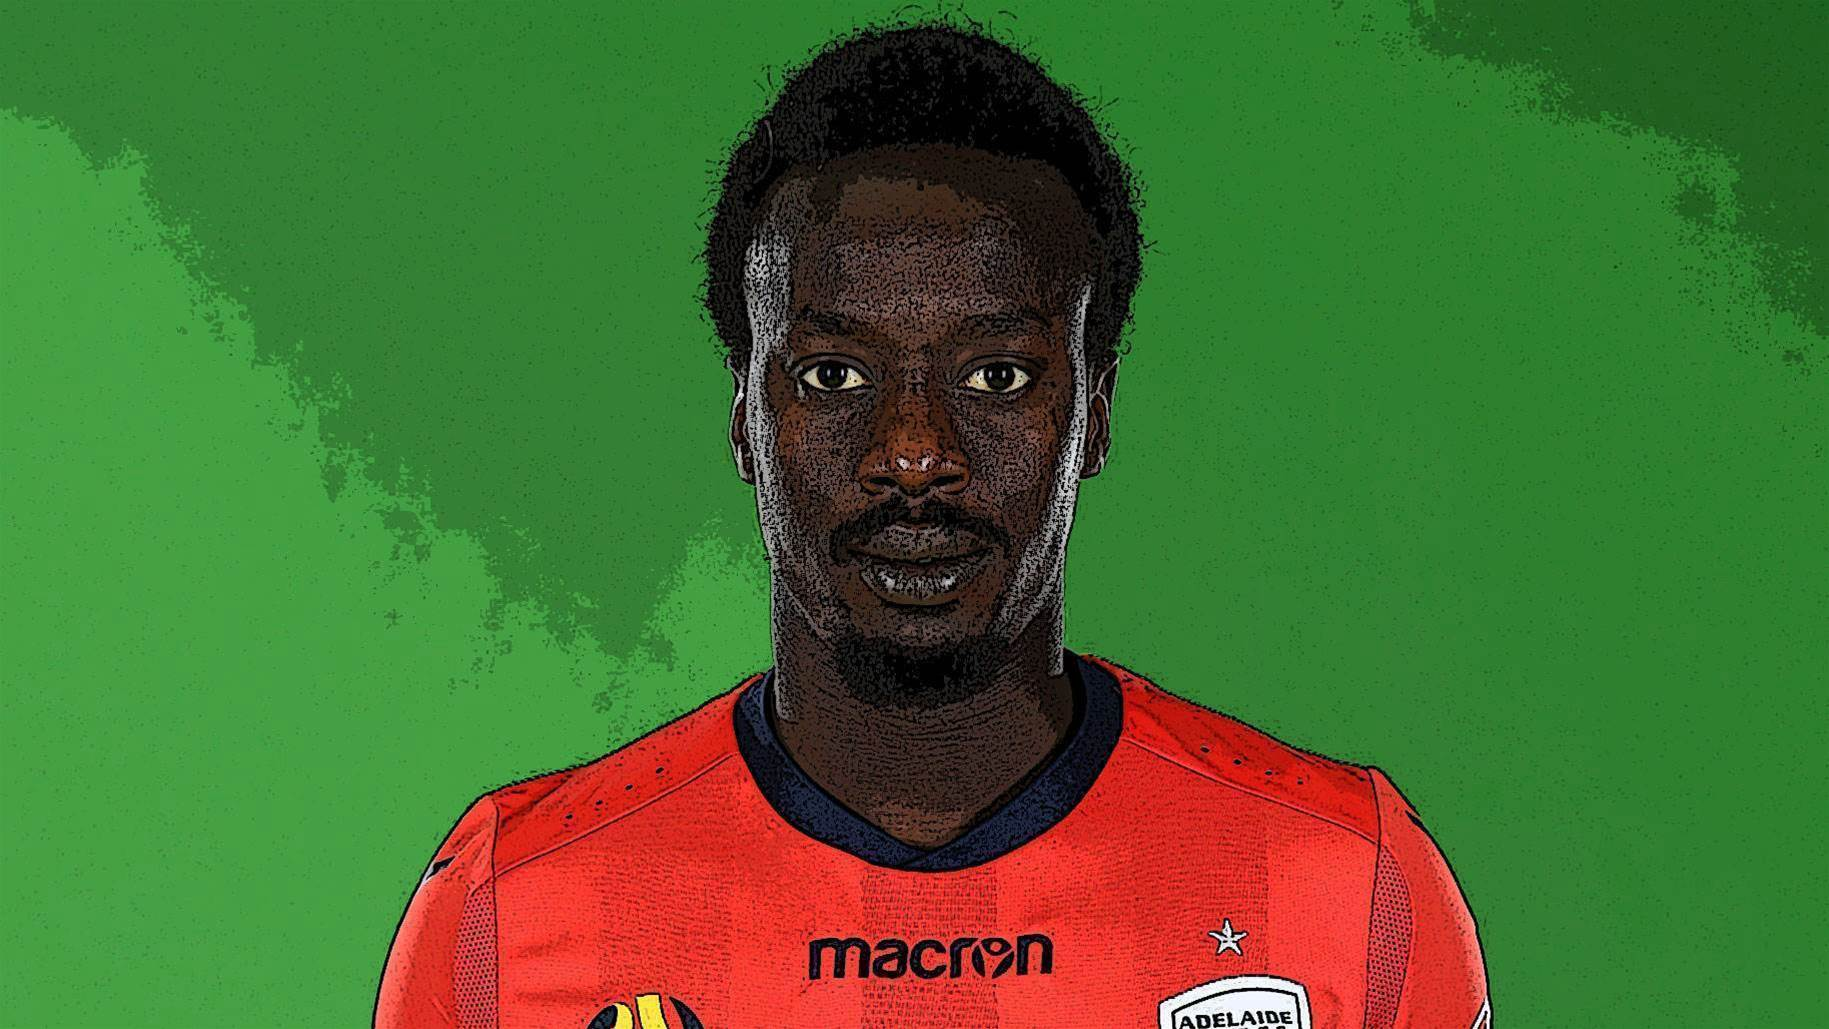 Adelaide United 2018/19: The headshots session